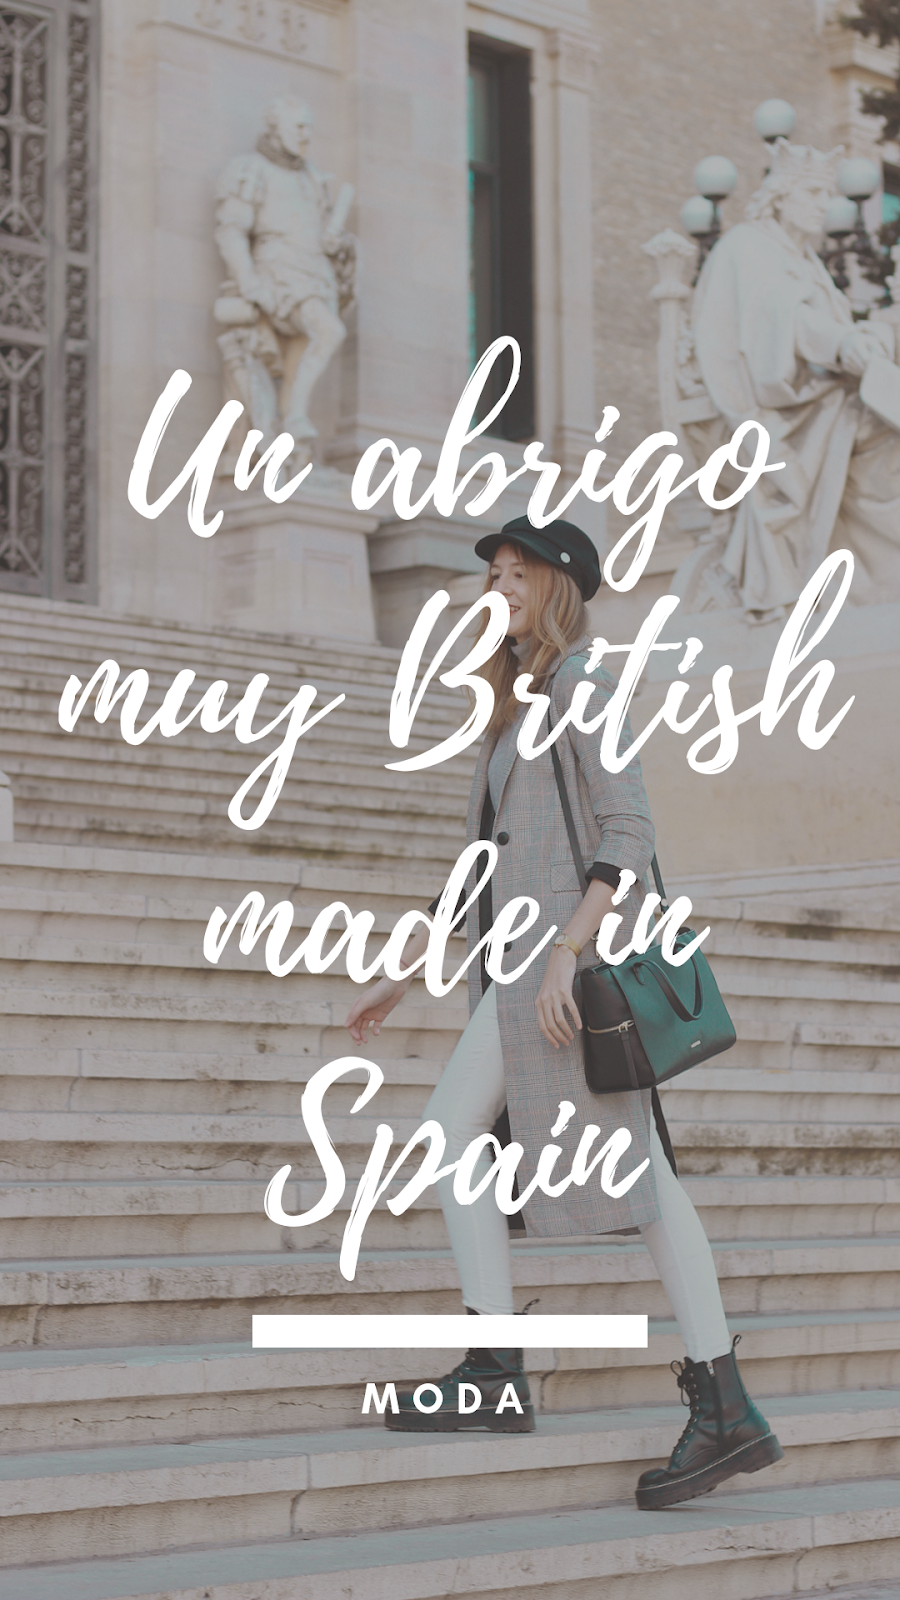 LA GABARDINA MÁS BRITISH MADE IN SPAIN